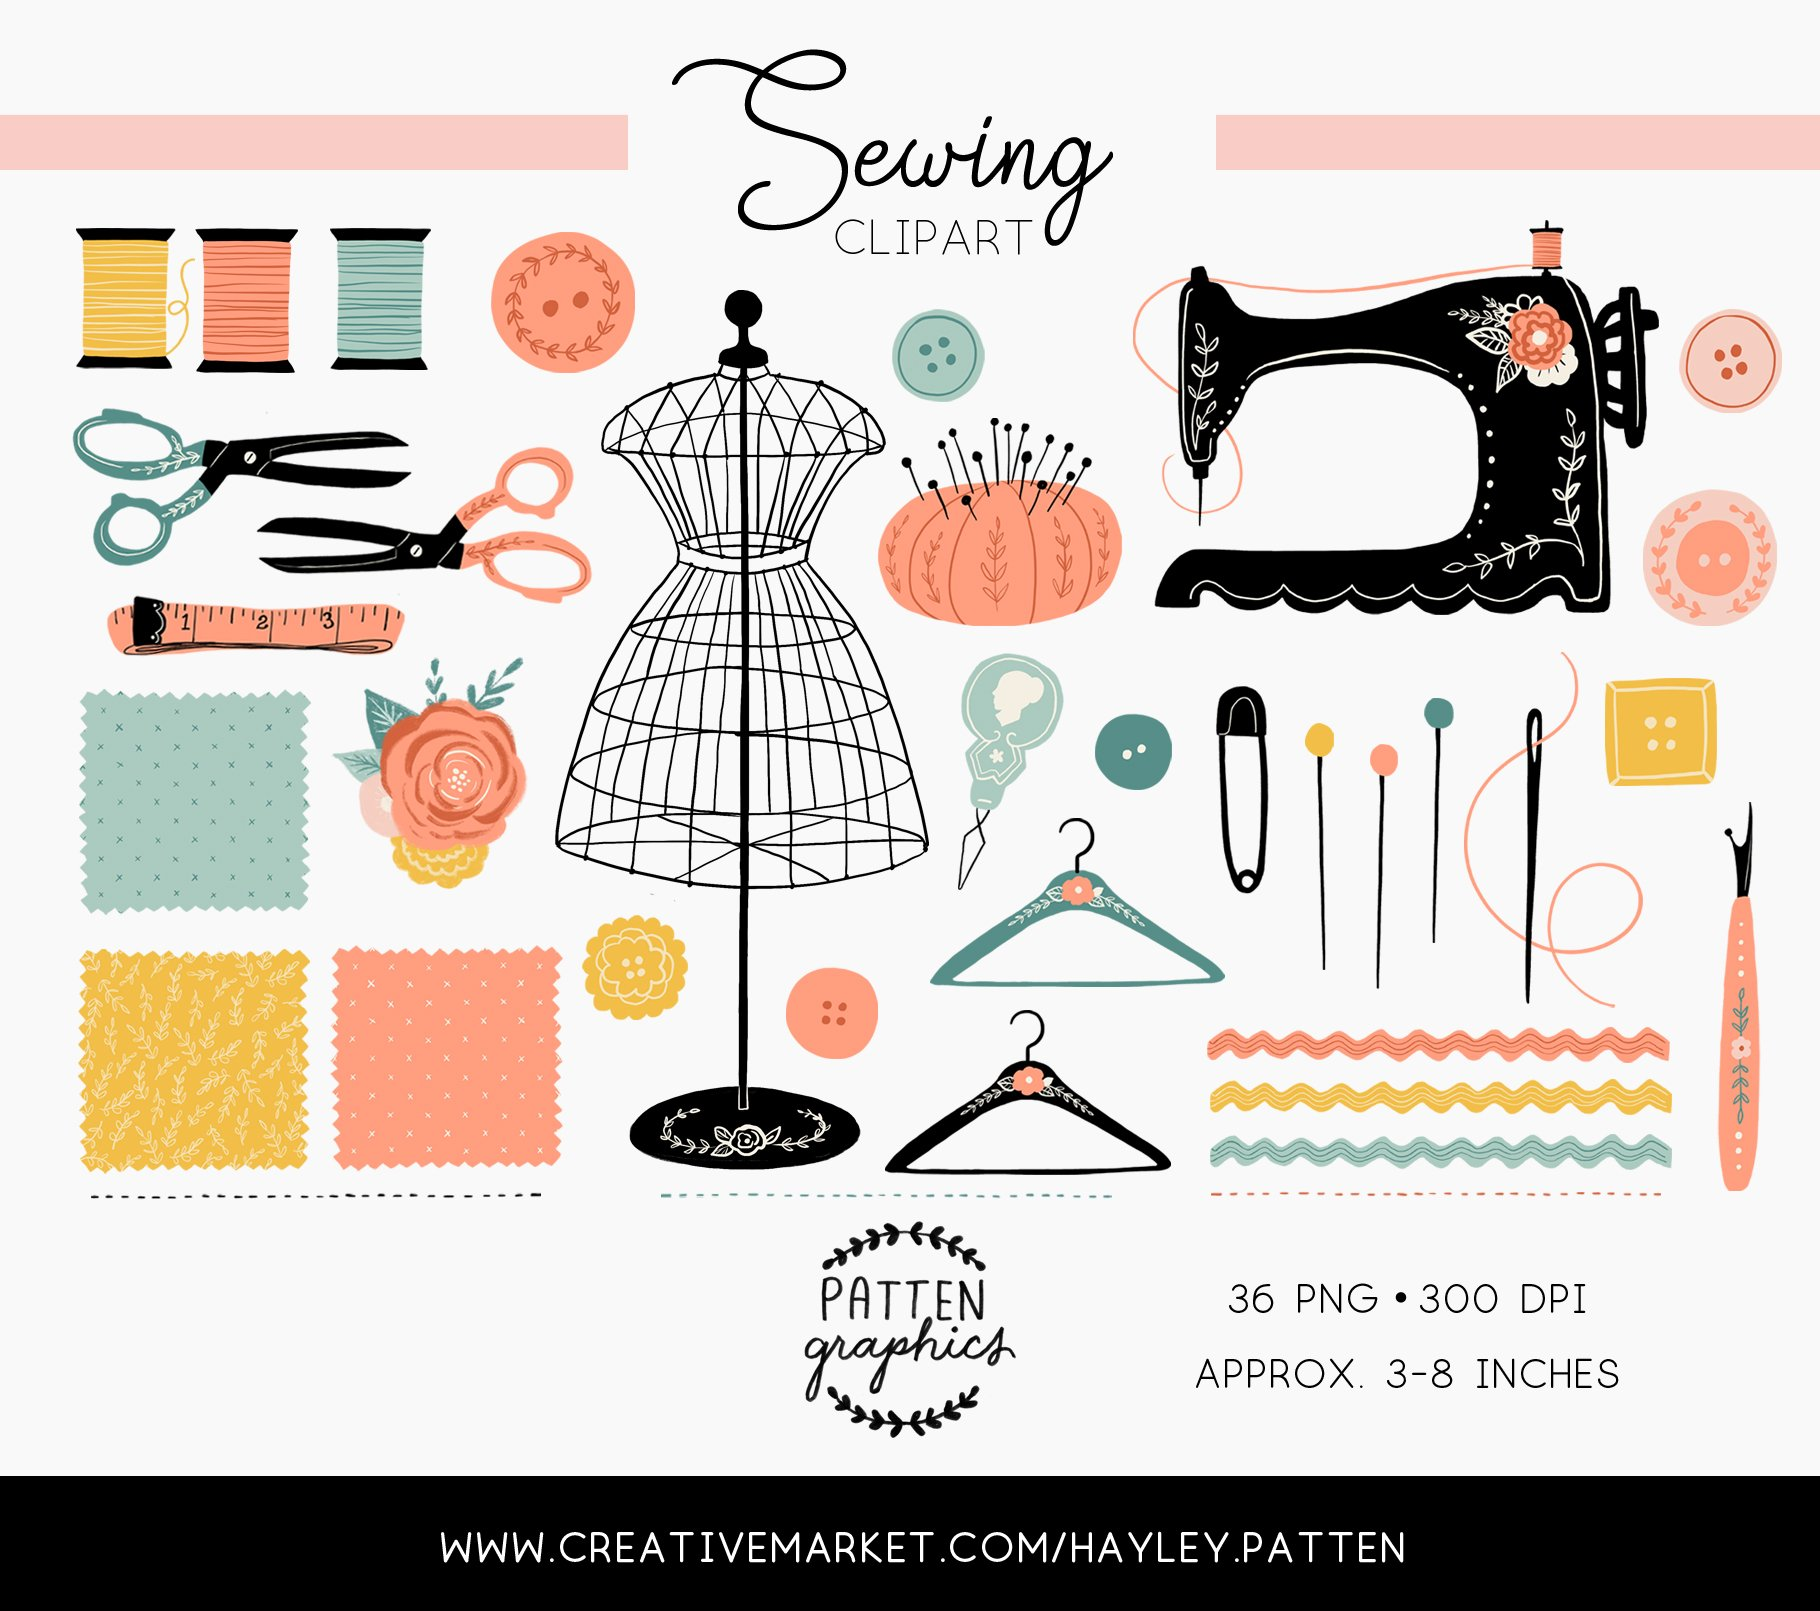 Sewing day clipart picture royalty free library Vintage Antique Sewing Clipart picture royalty free library